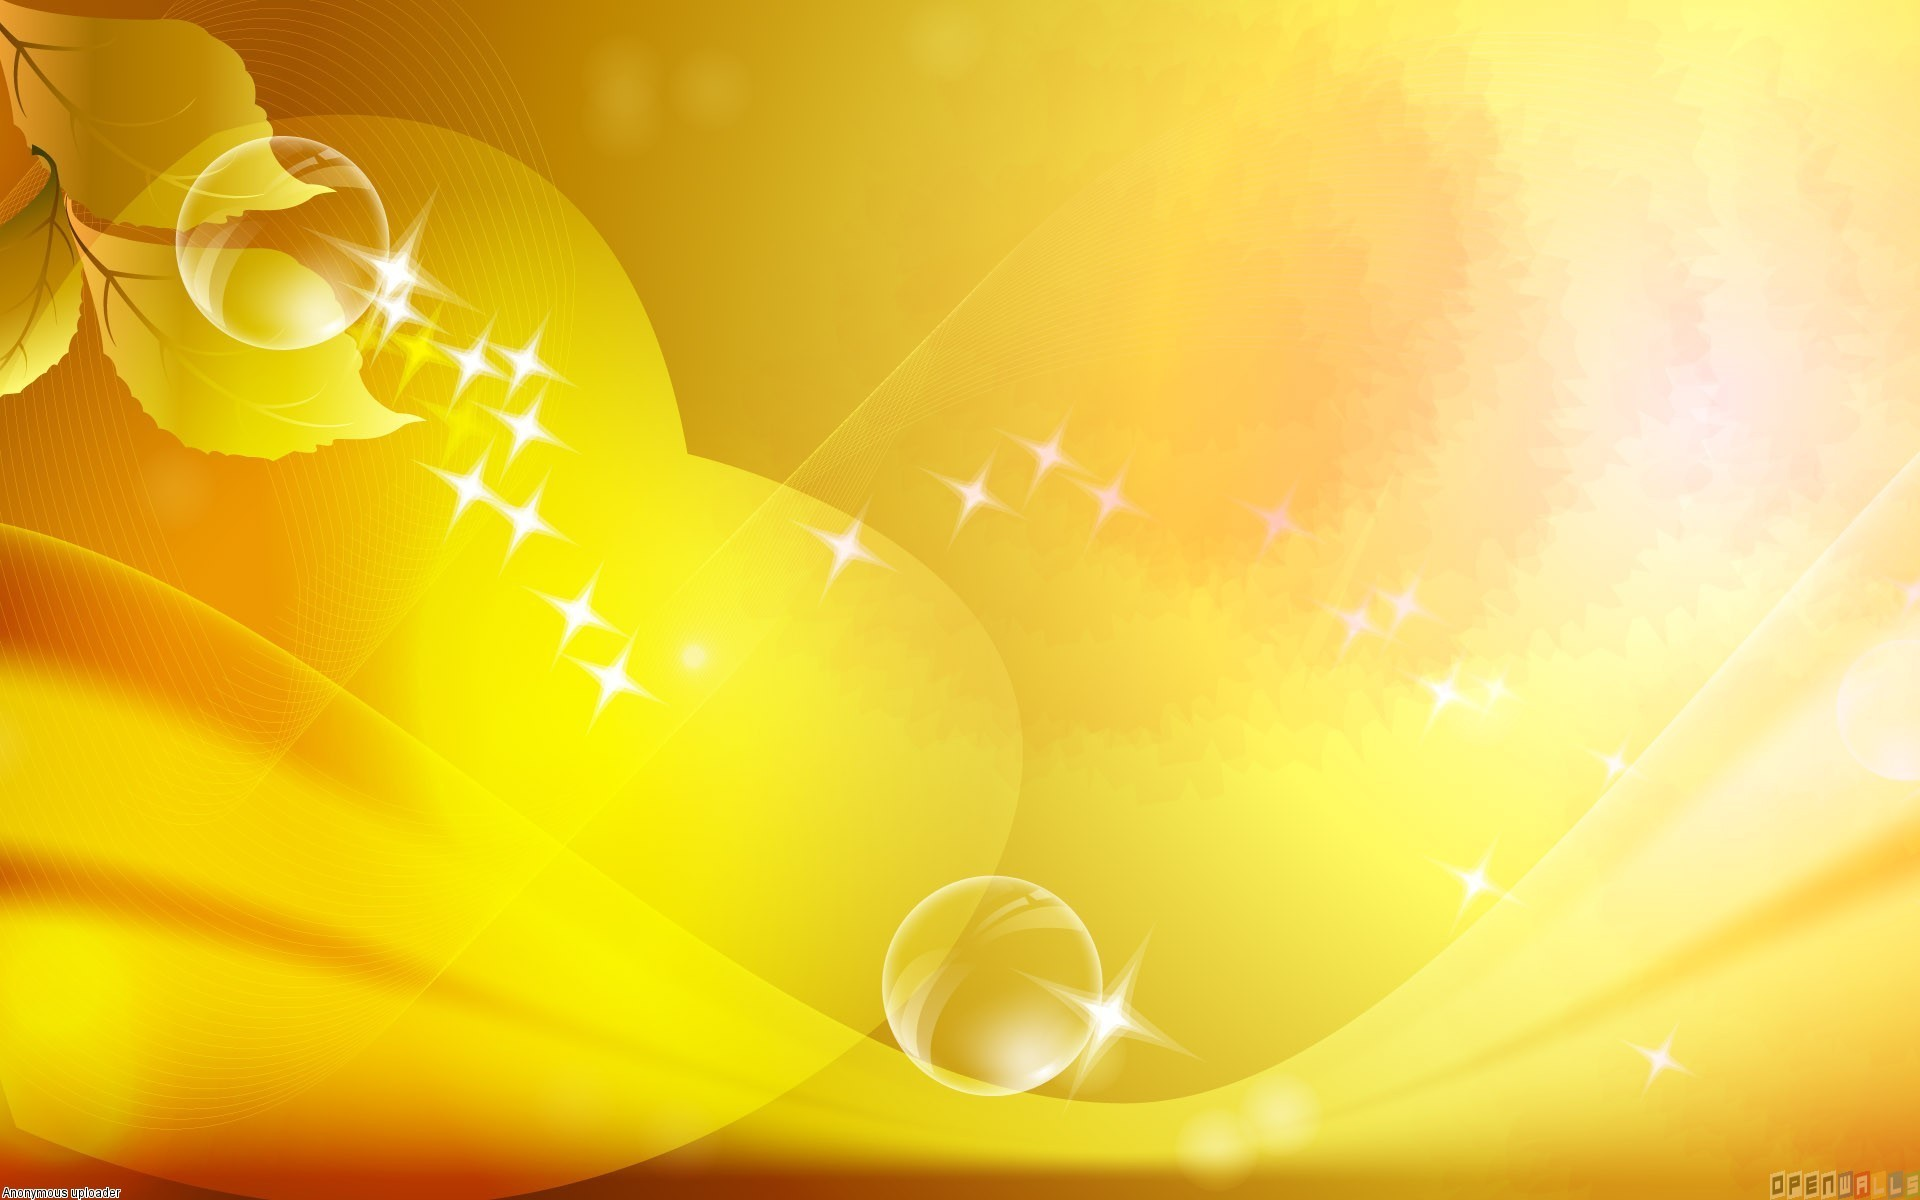 1920x1200 Yellow Background wallpaper - 342361